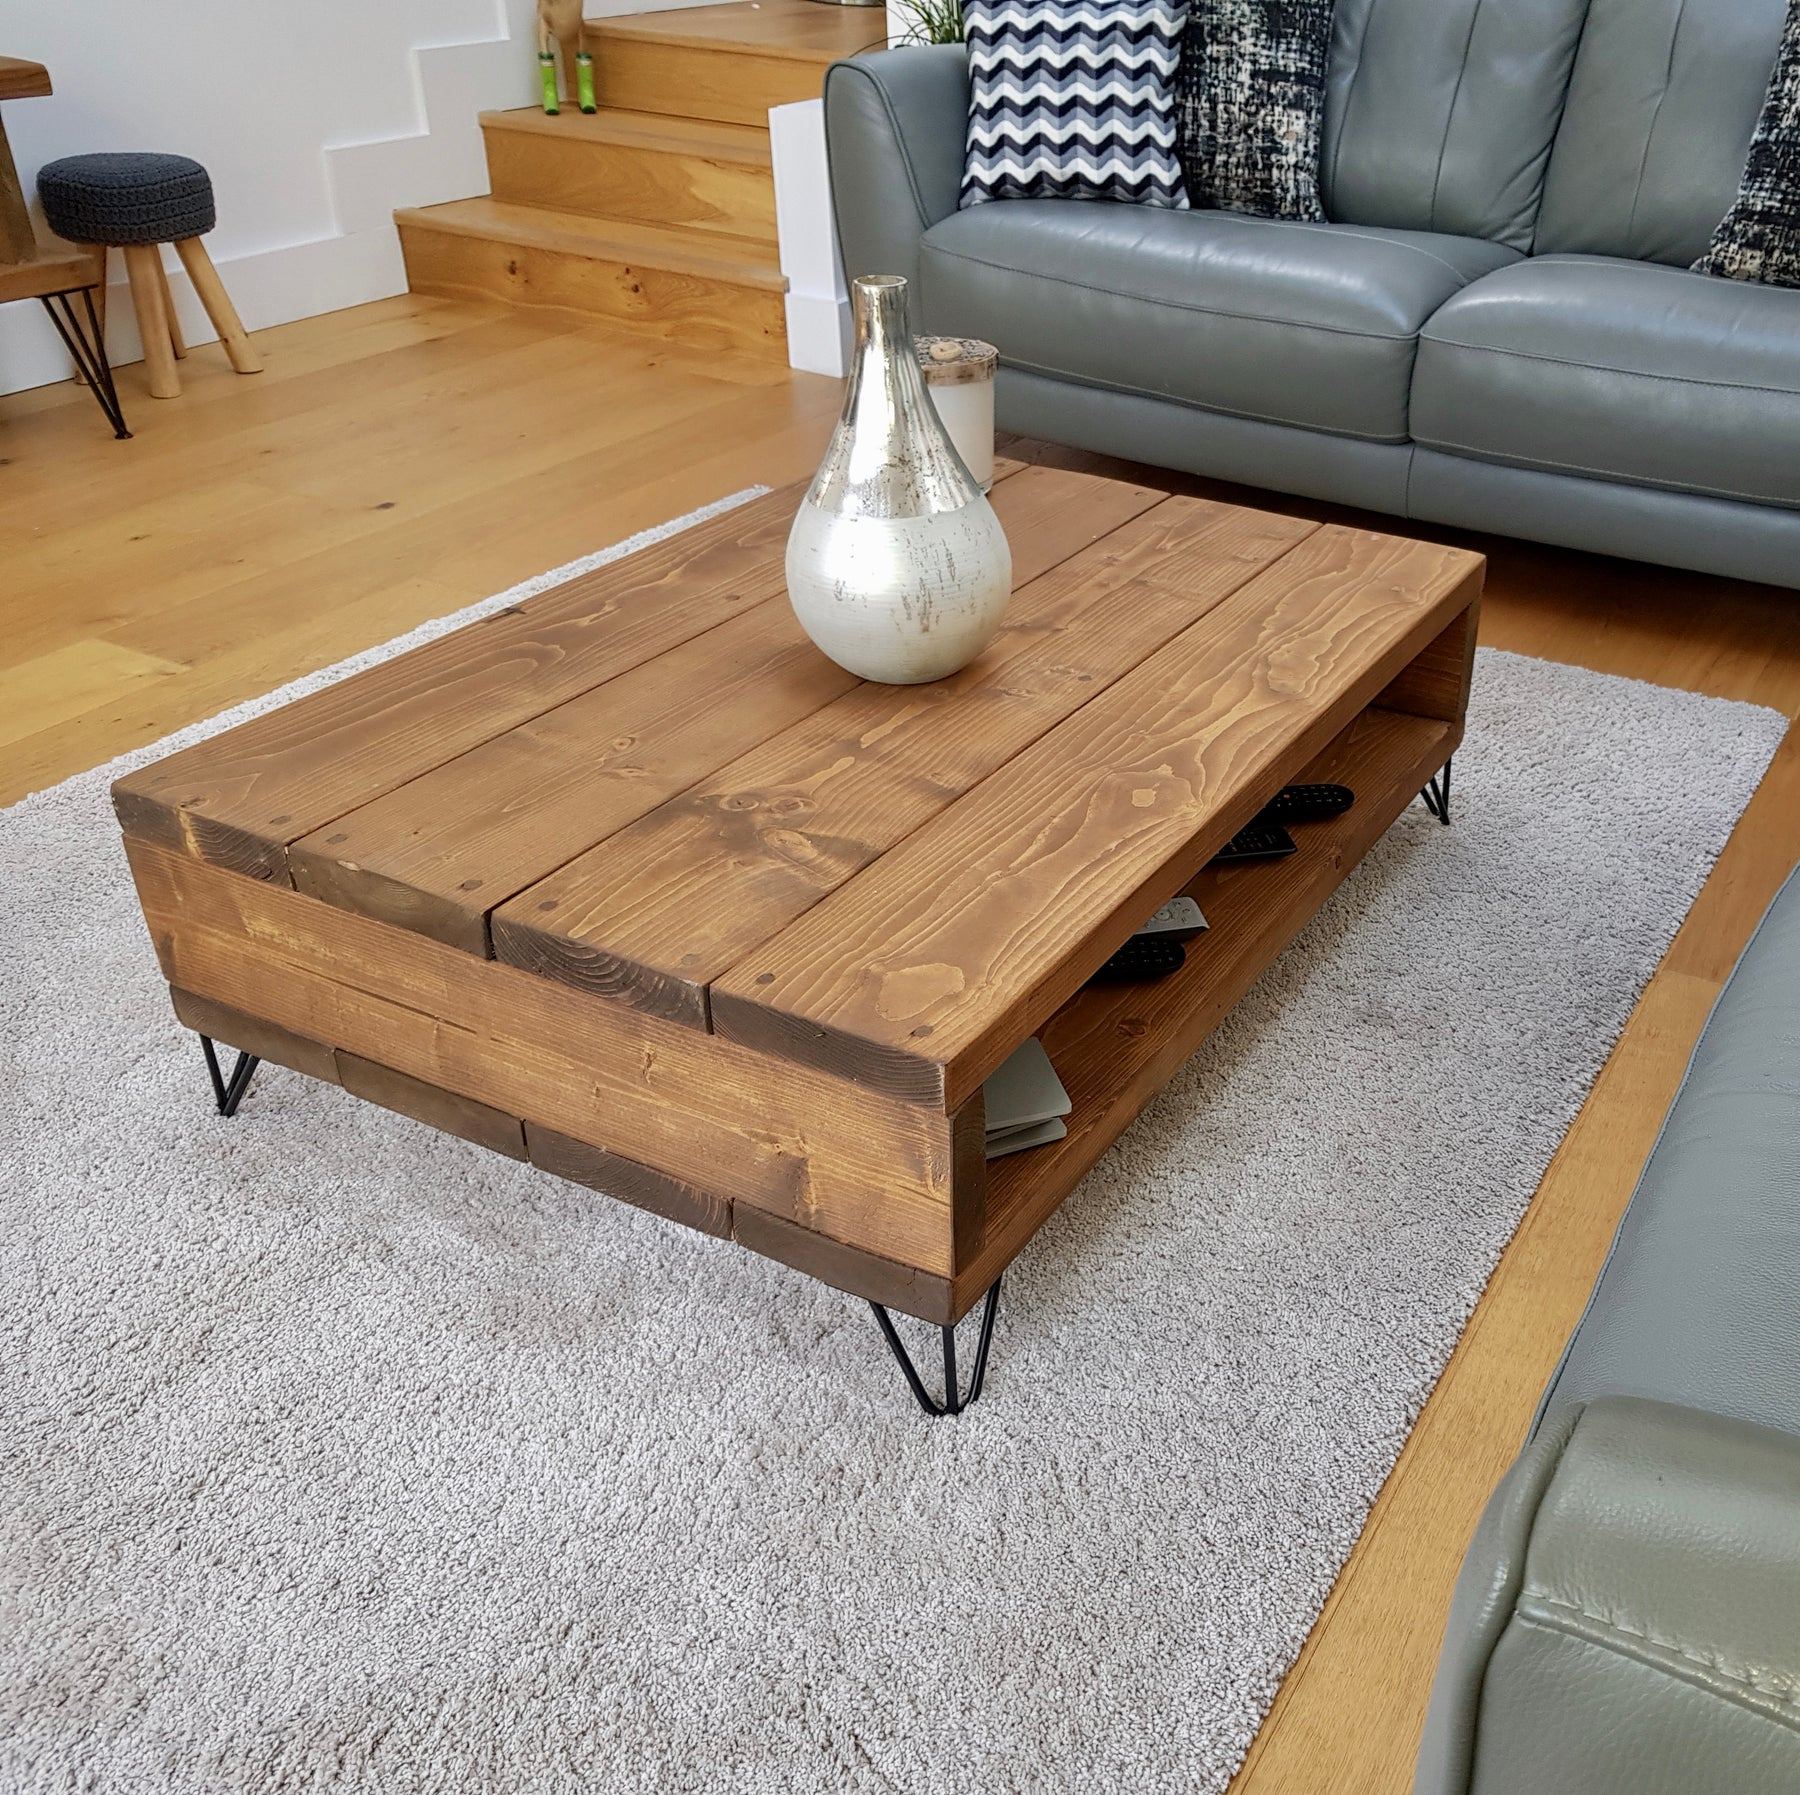 rustic frogham tv unit with industrial metal legs. Handcrafted by new forest rustic furniture finished in a dark oak